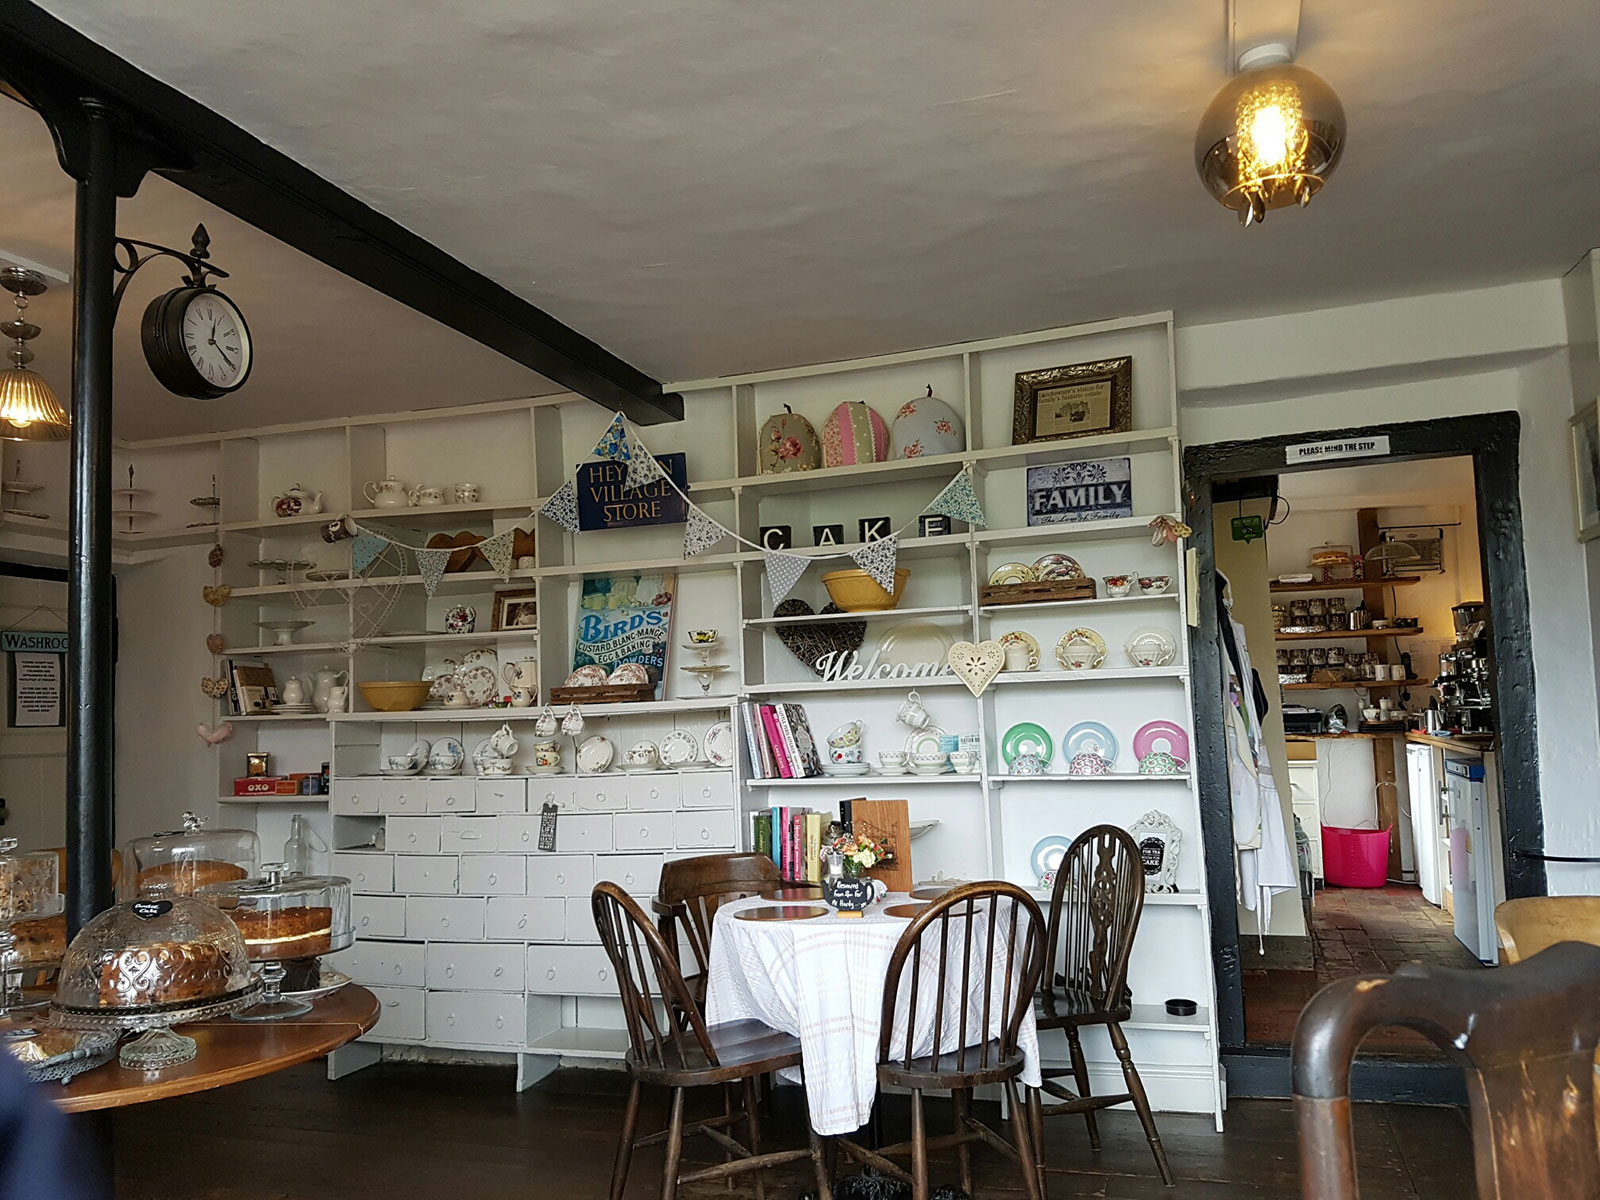 Inside Local Tea Shop at Heydon